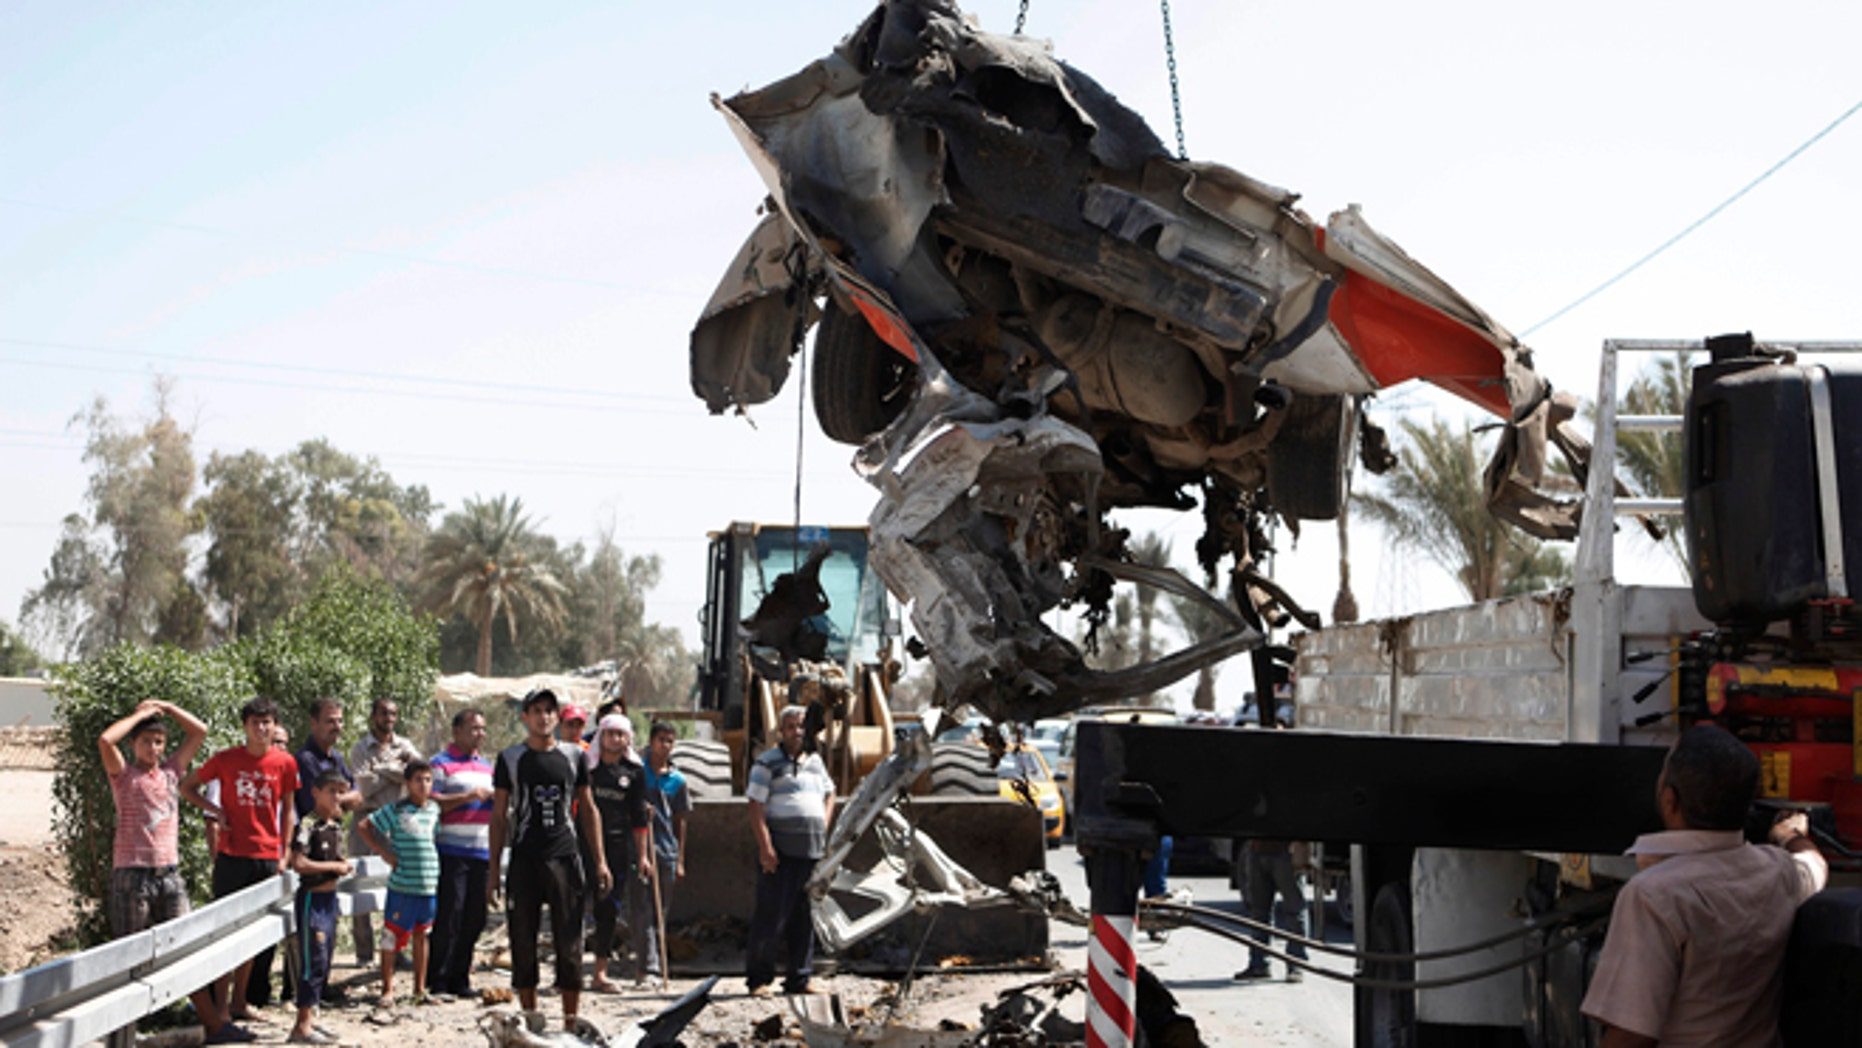 September 9, 2012: A destroyed car is moved from the scene of a car bomb attack in the town of Taji, about 12 miles north of Baghdad, Iraq.